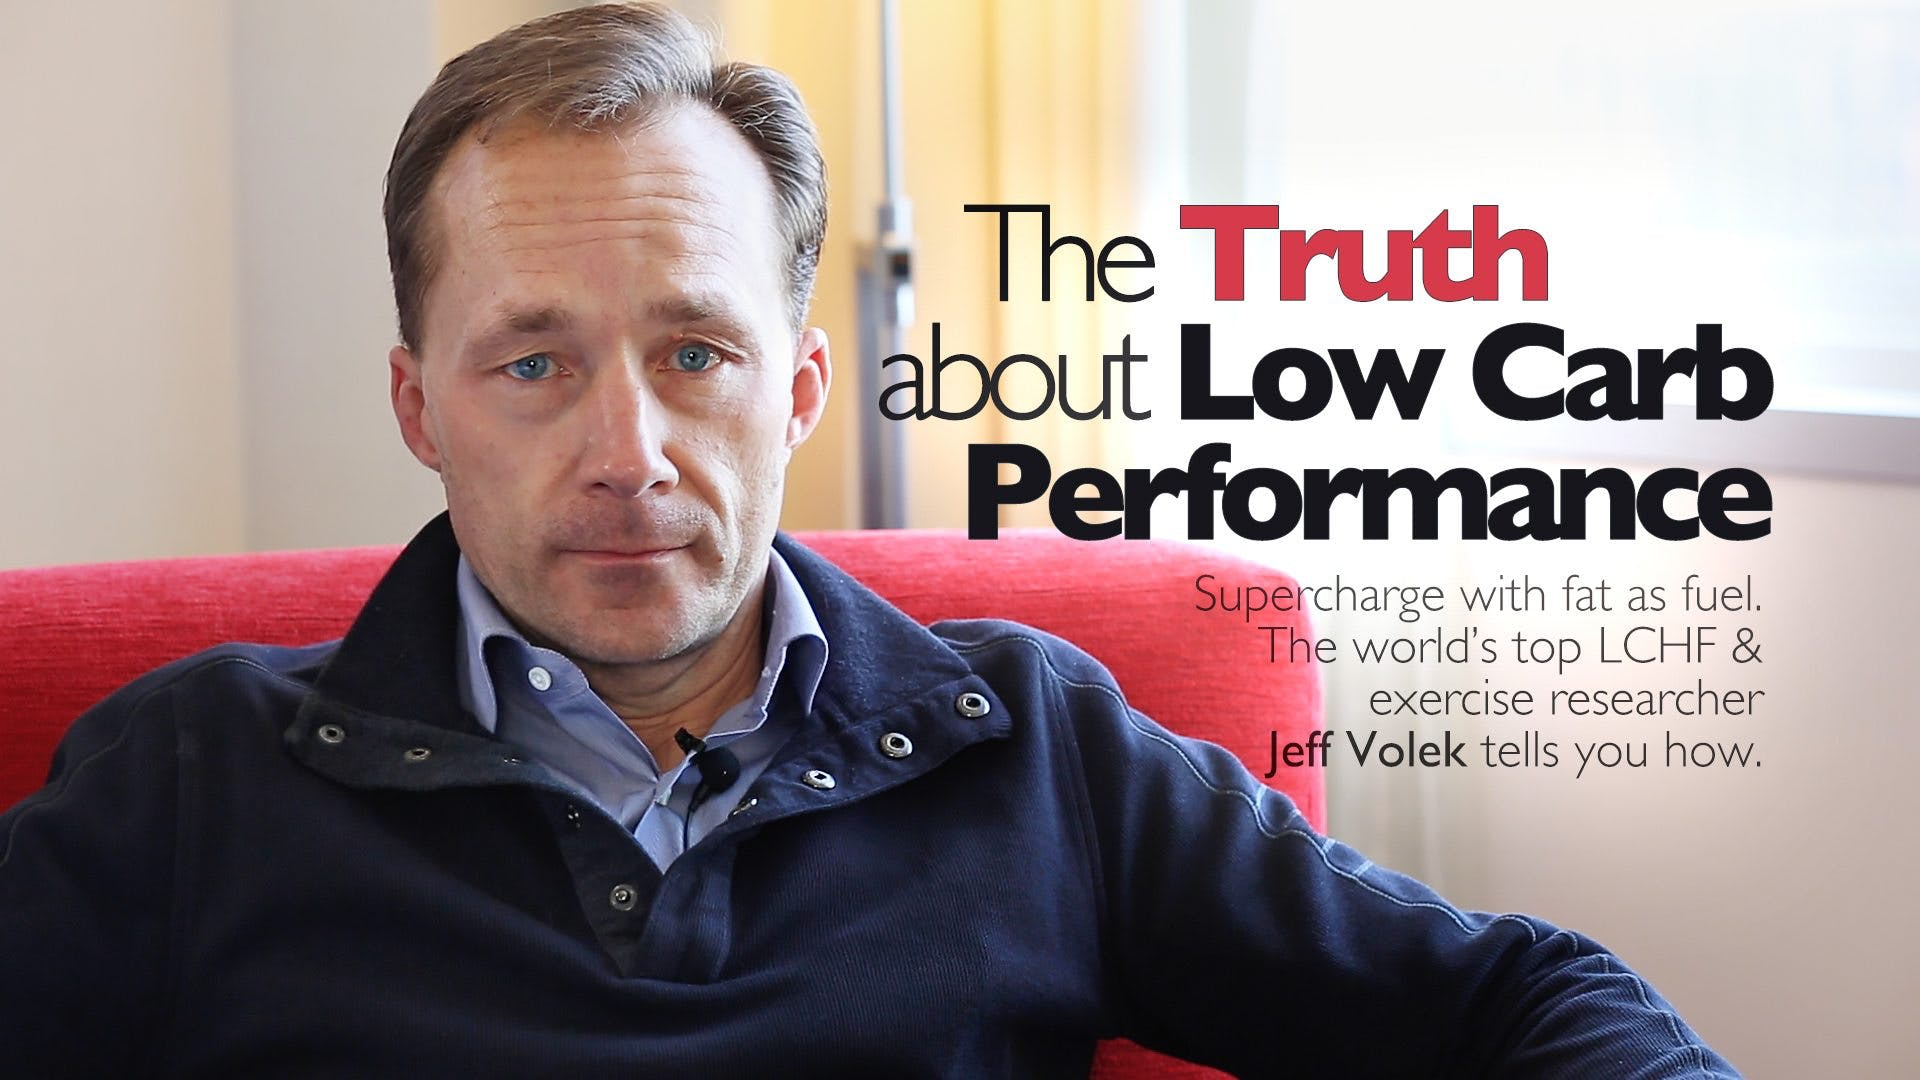 The truth about low-carb performance